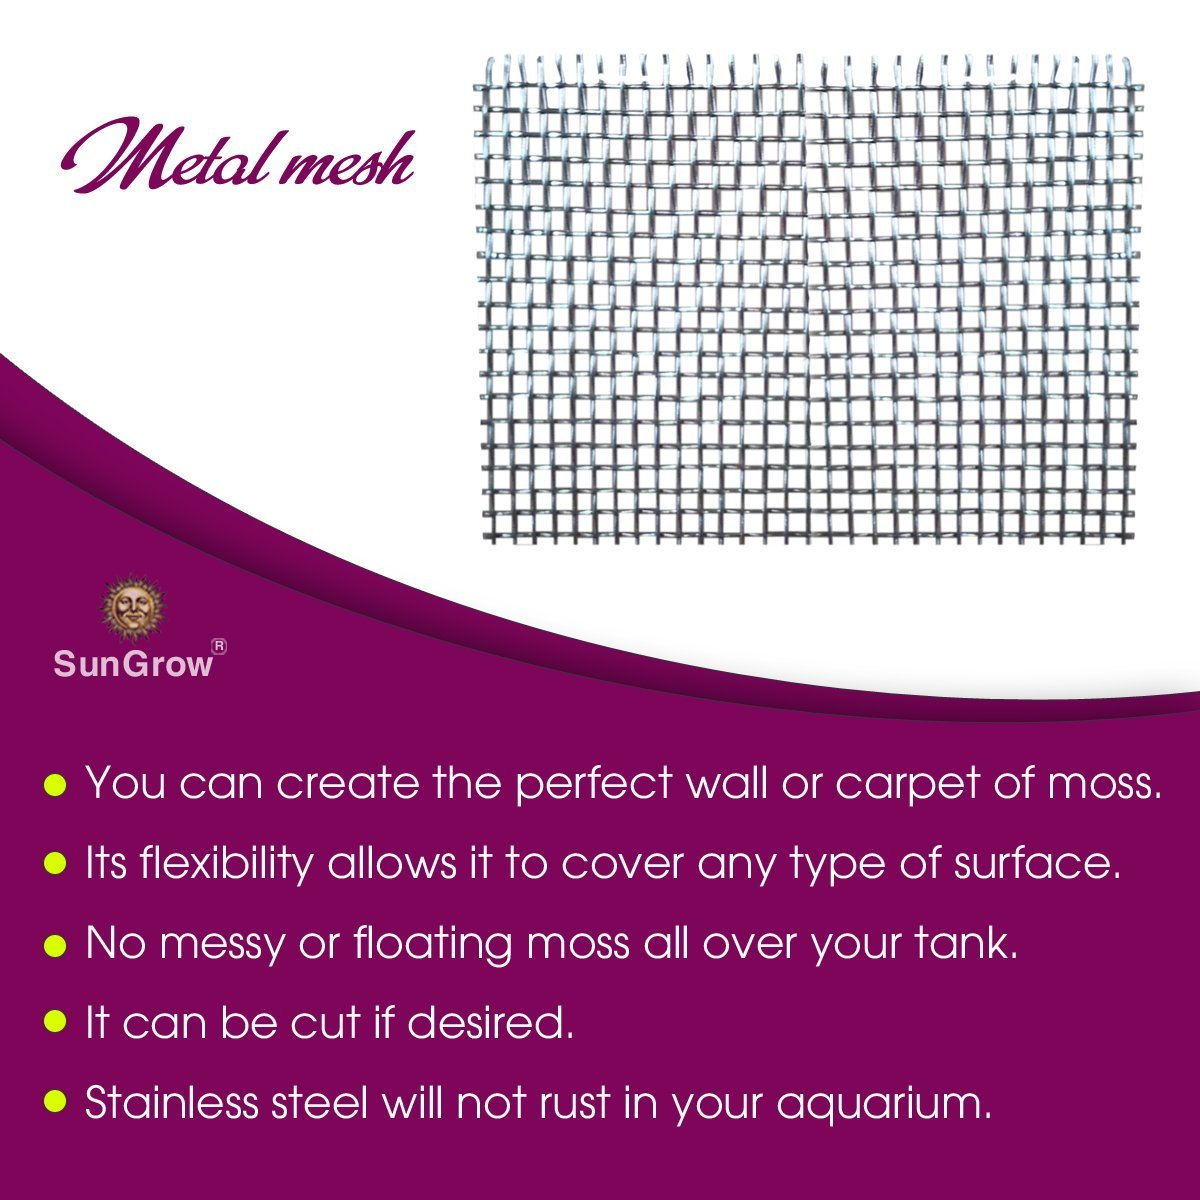 Luffy wire mesh wall 5 pcs very high grade stainless steel does not rust no messy floating for Decor star 005 ss